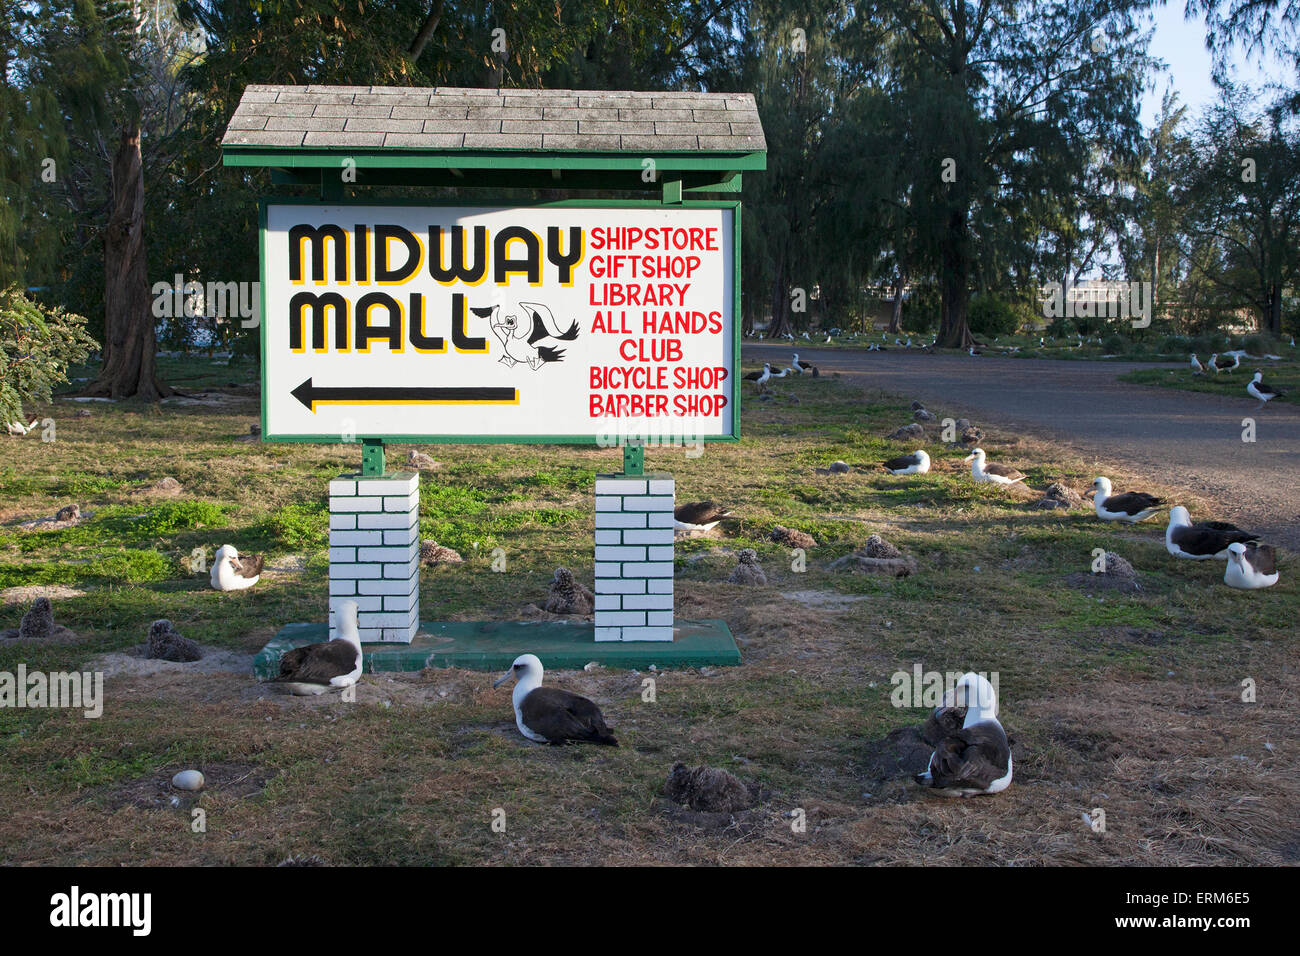 Midway Mall sign on Midway Atoll - Stock Image